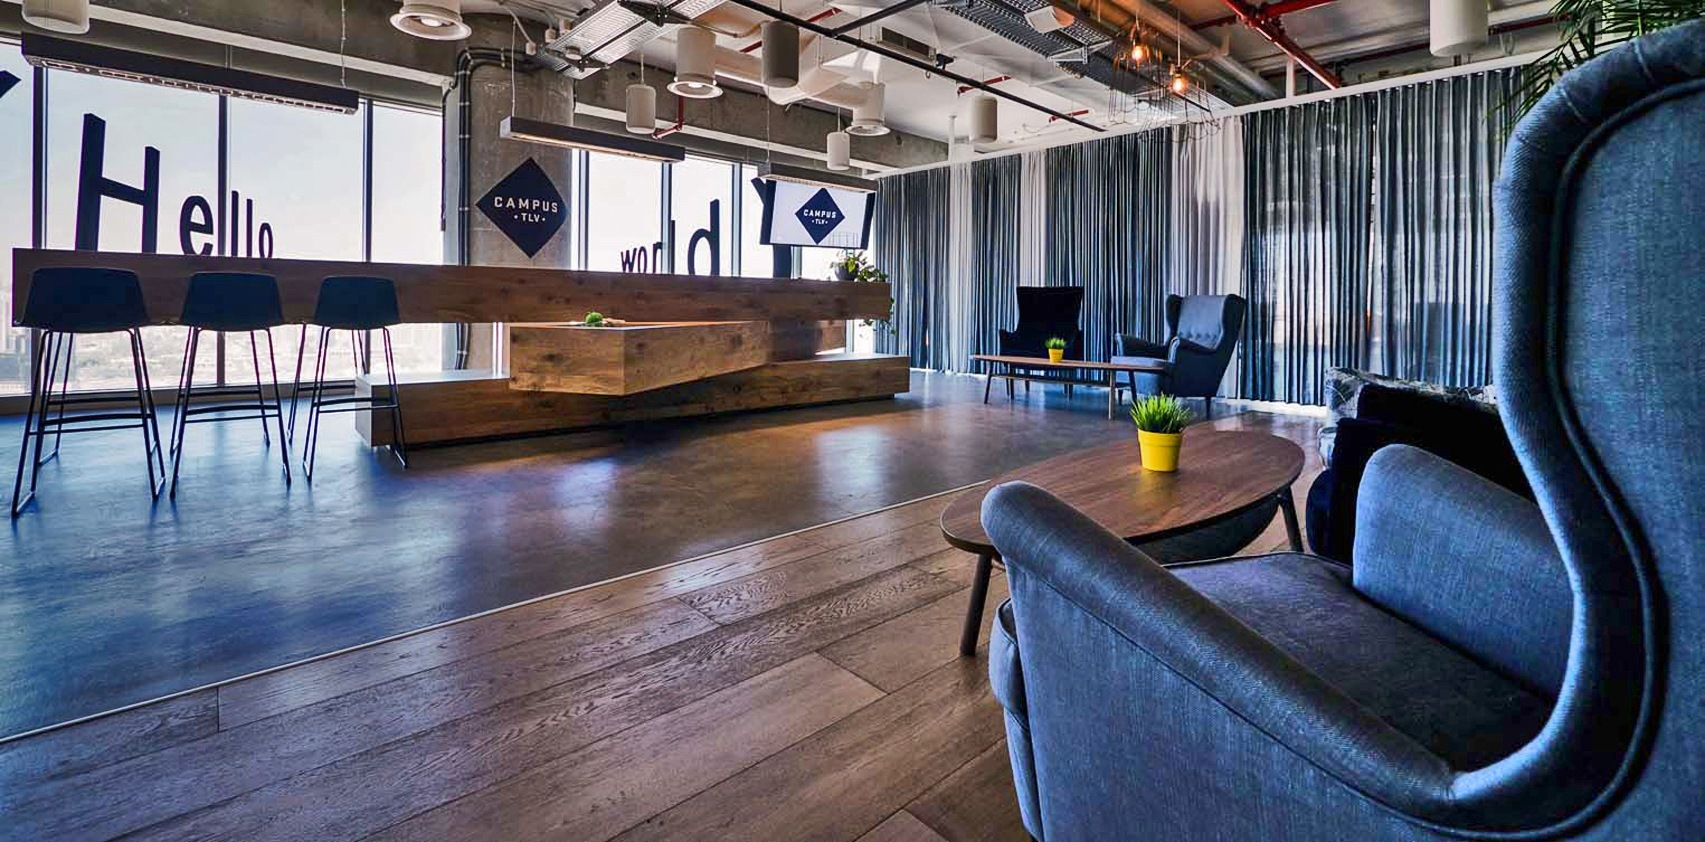 google tel aviv office. Rd2sq Google Tel Aviv. Aviv Office Tel. Reception\\\\u2026 -